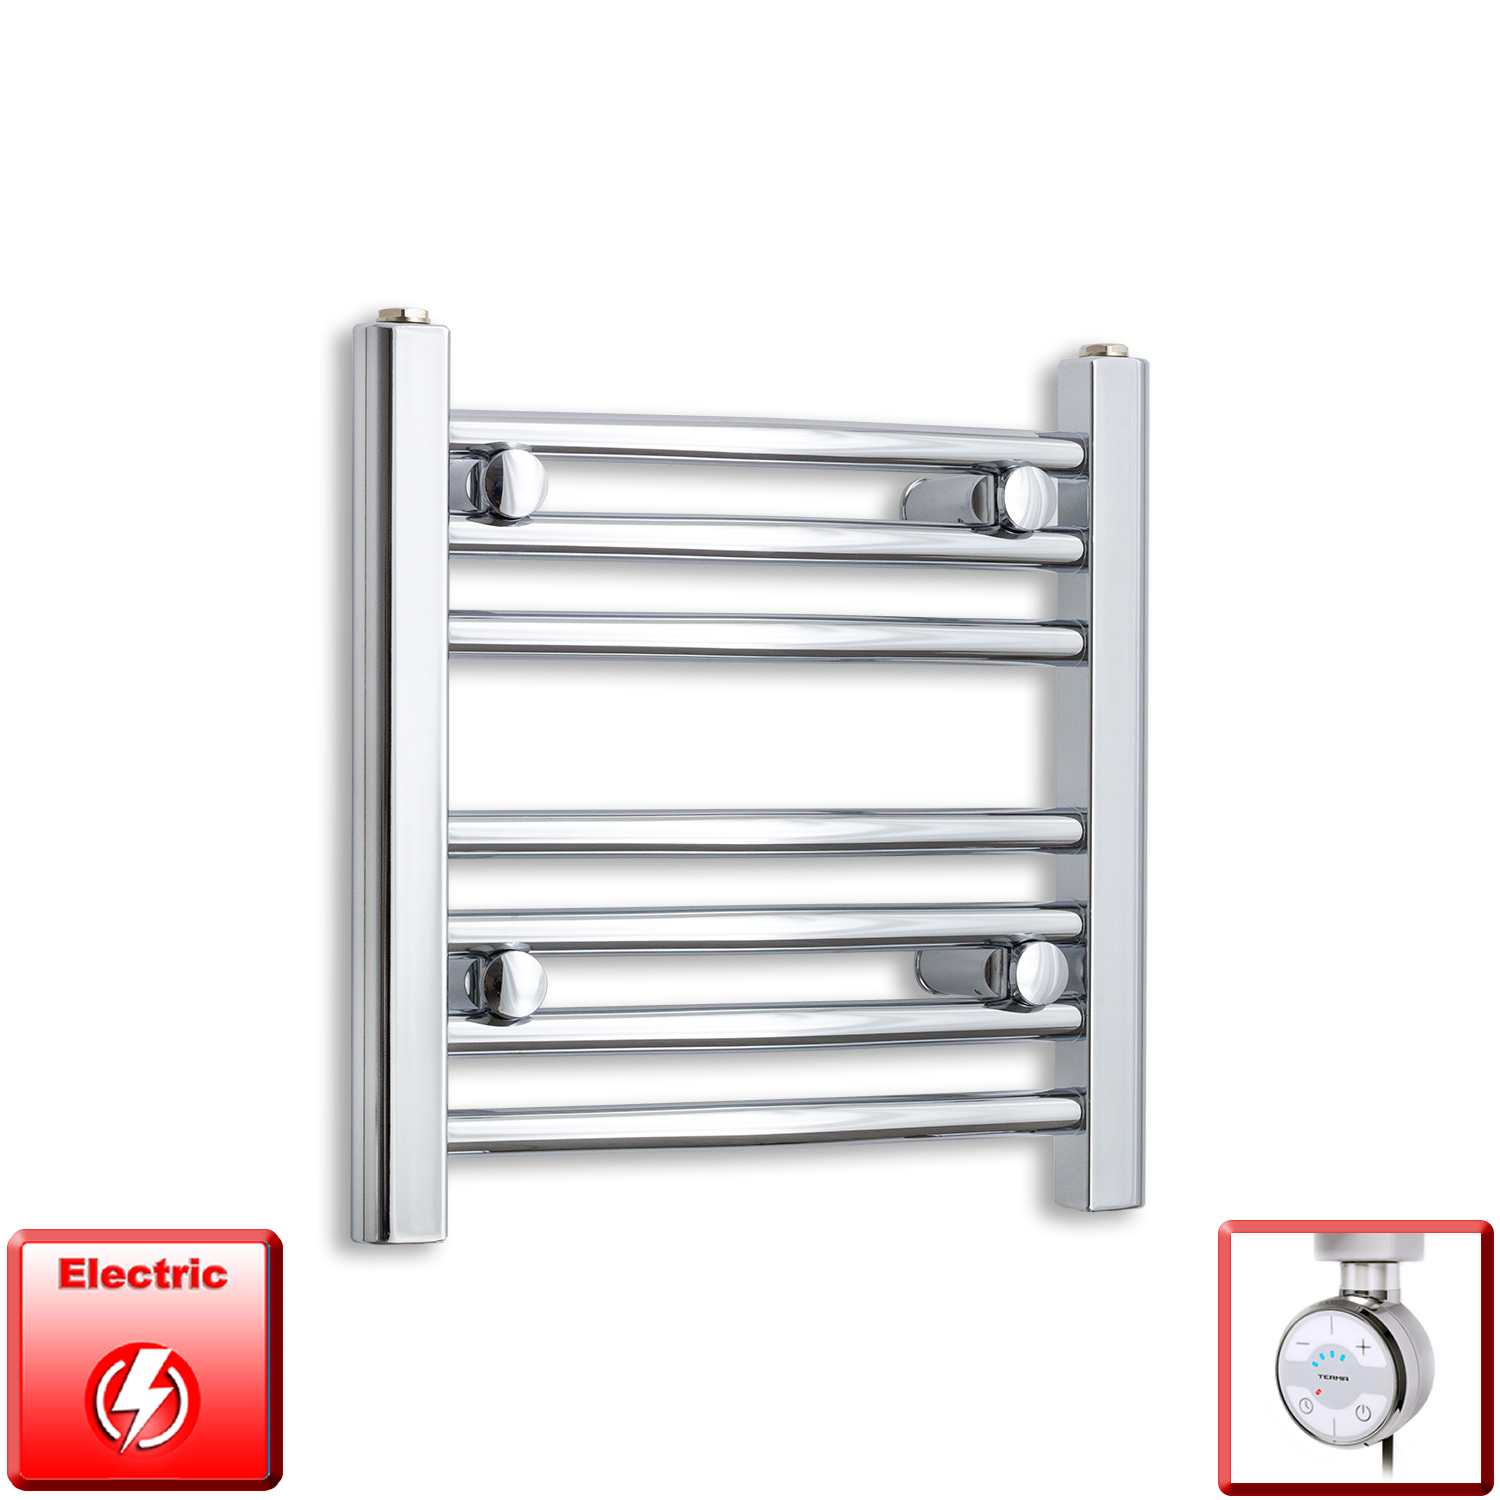 400mm Wide 400mm High Pre-Filled Chrome Electric Towel Rail Radiator With Thermostatic MOA Element